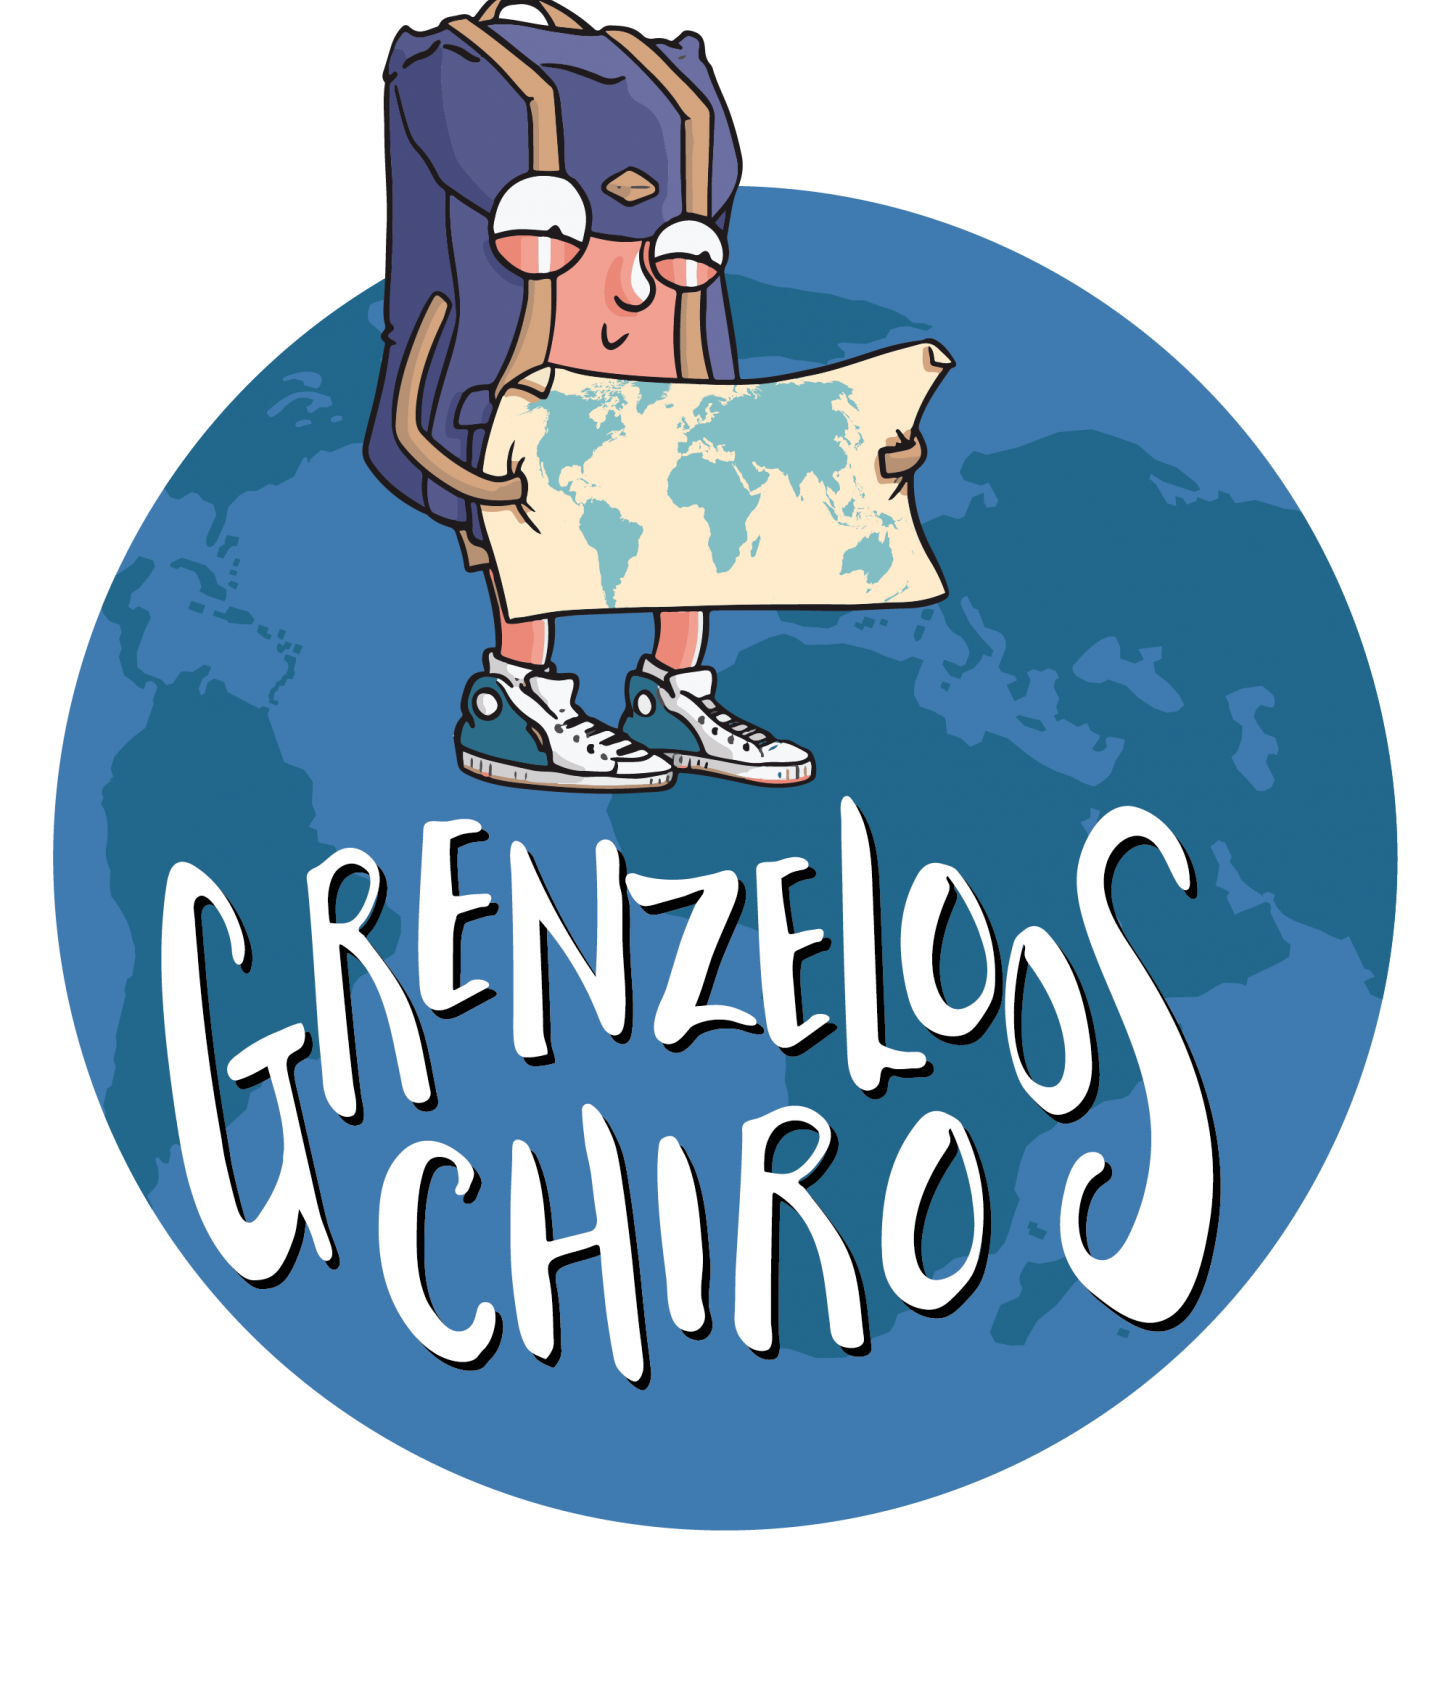 Grenzeloos chiro